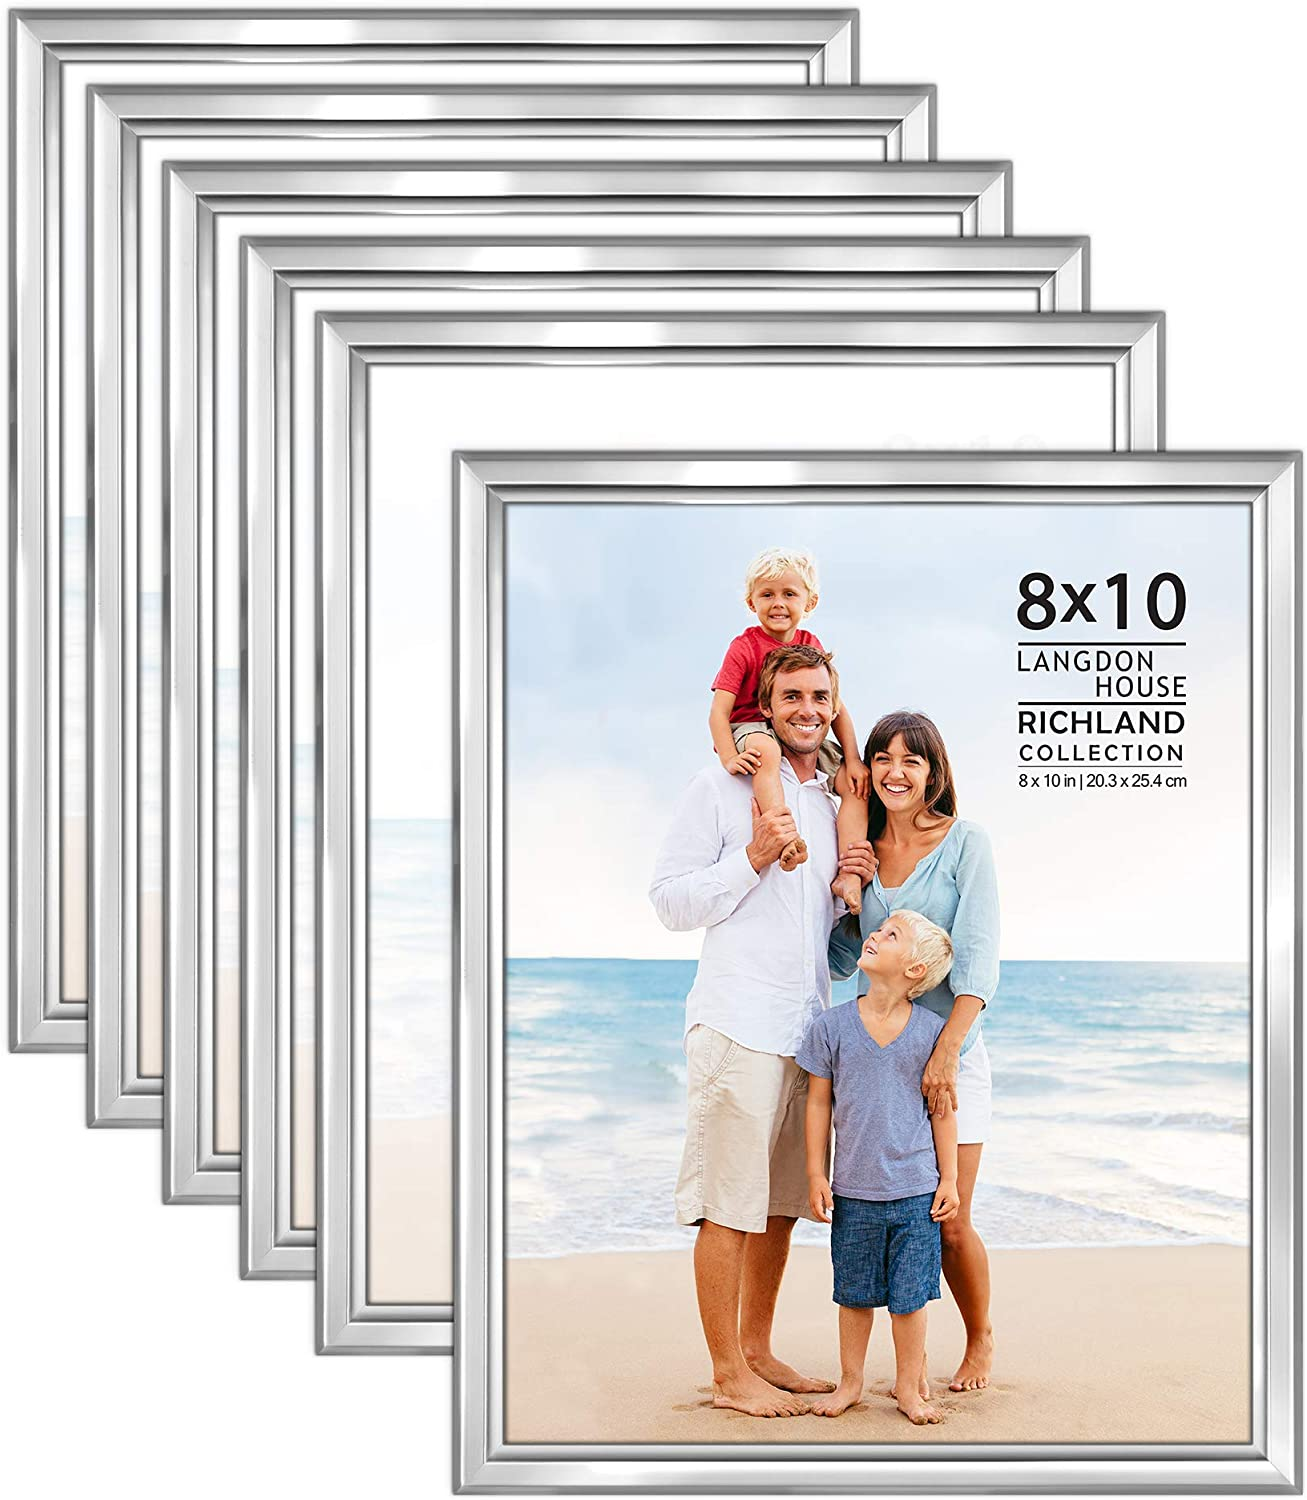 Langdon House 8x10 Picture Frames Set (Silver, 6 Pack) Distinguished Edging for Classic Style, Richland Collection